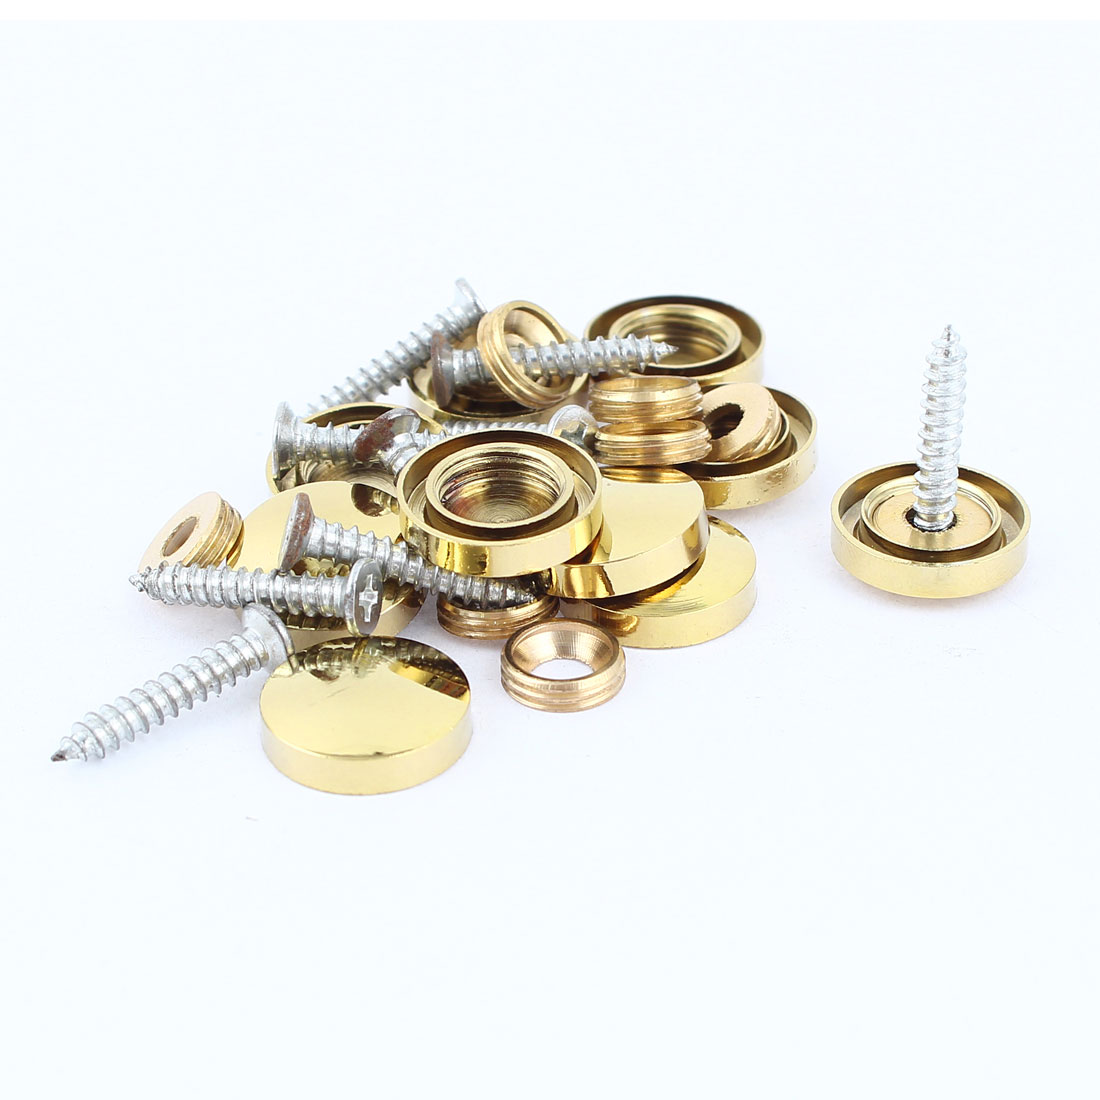 10Pcs Fitting Parts Brass Tone 16mm Diameter Screw Cap Mirror Nails Decoration Lid